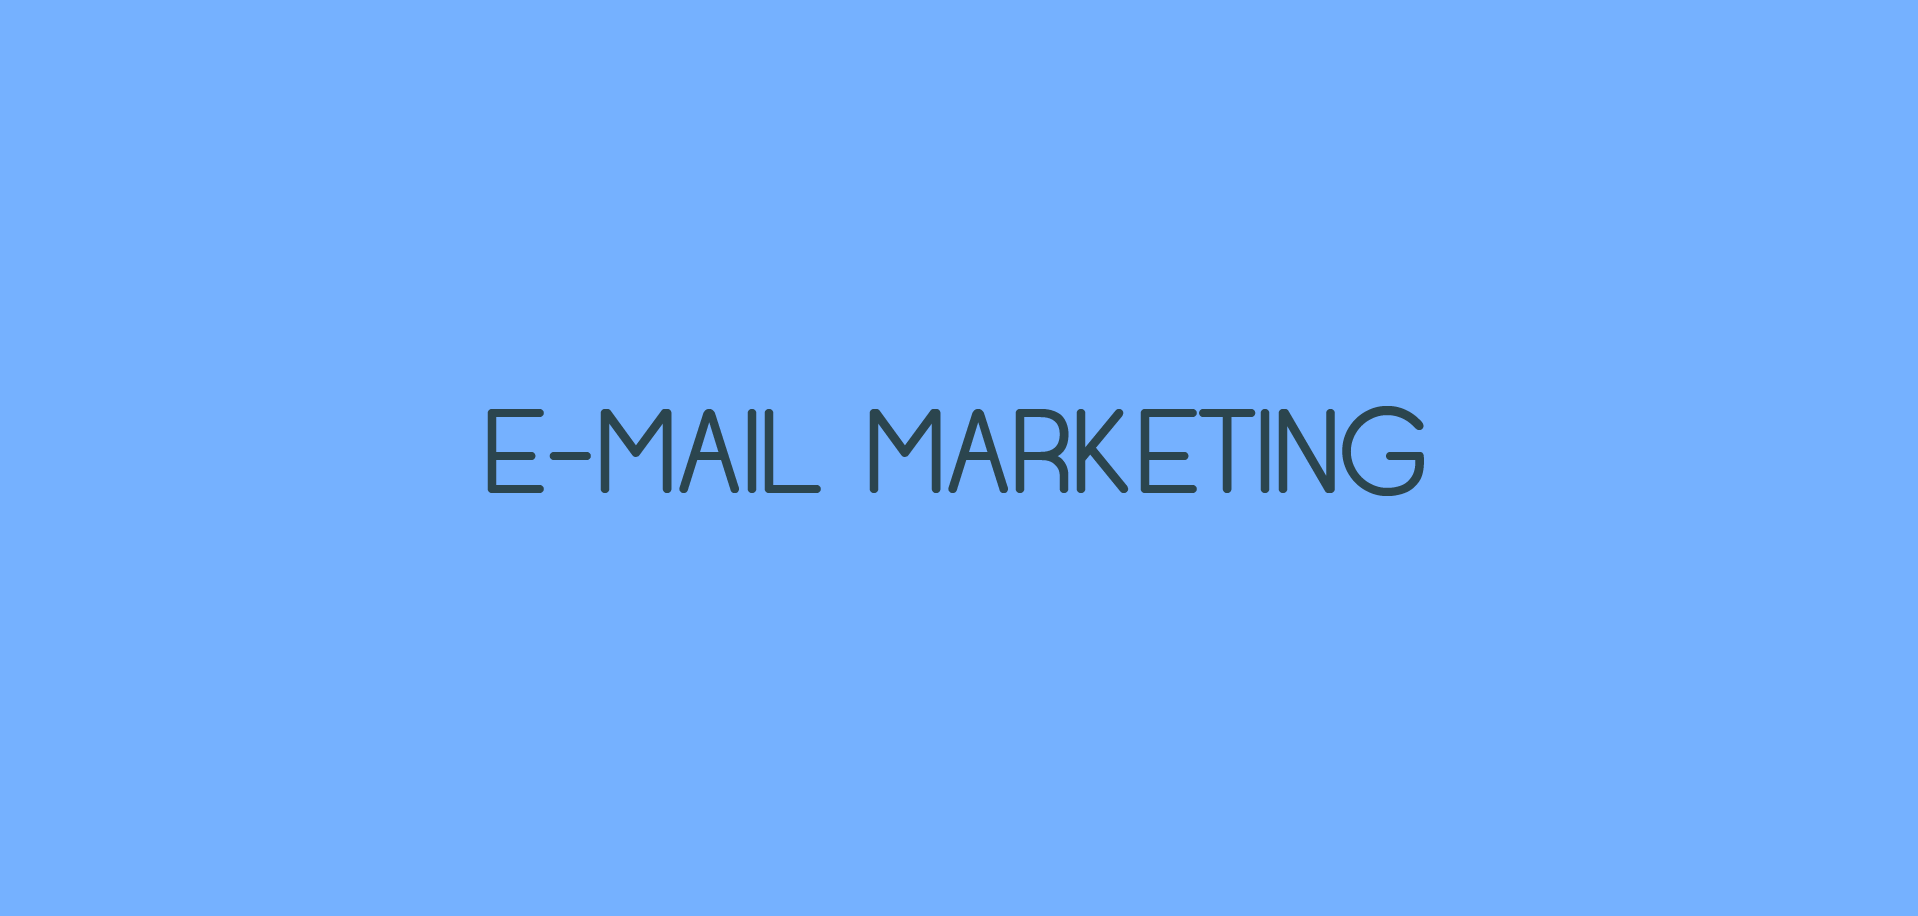 E-MAIL MARKETING, Tendencias Marketing online 2017 copia 2